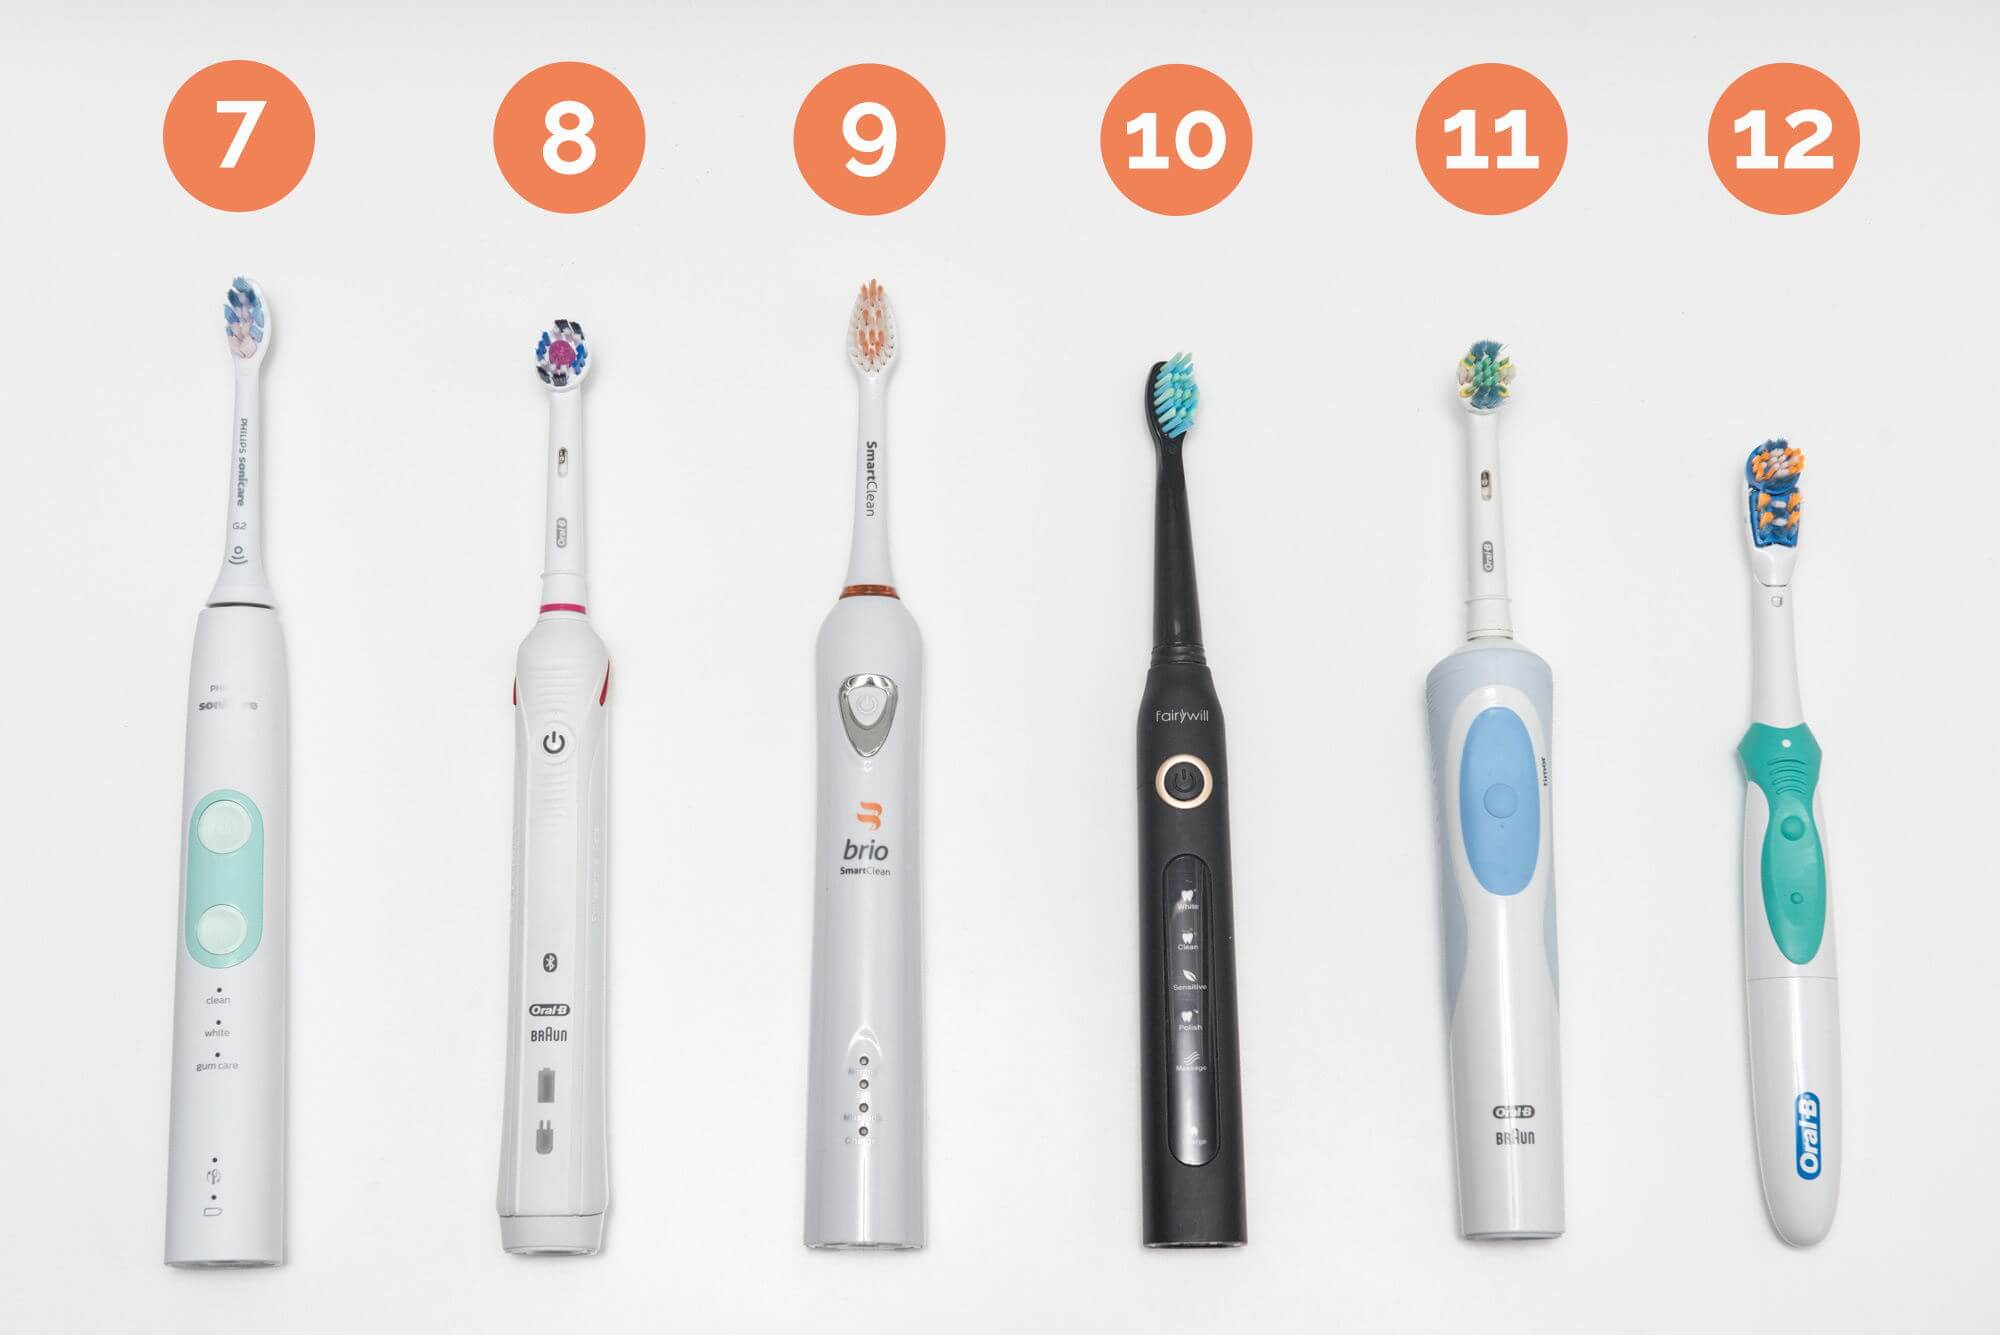 Big W Electric Toothbrush The Best Electric Toothbrush Of 2019 Bathroom Tested Your Best